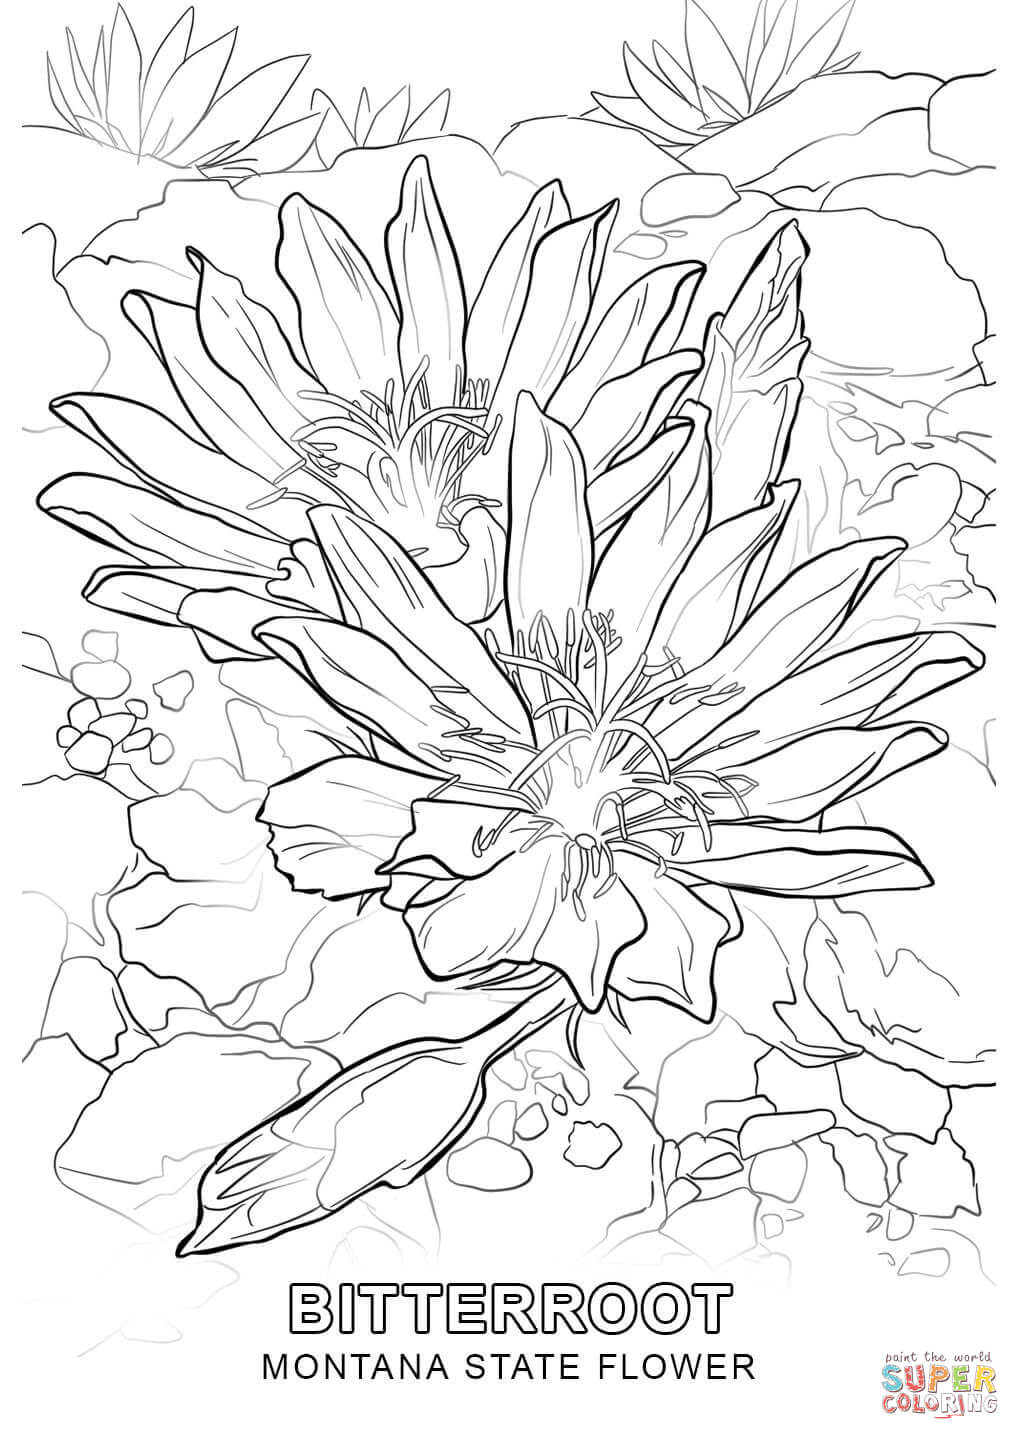 Click the montana state flower coloring pages